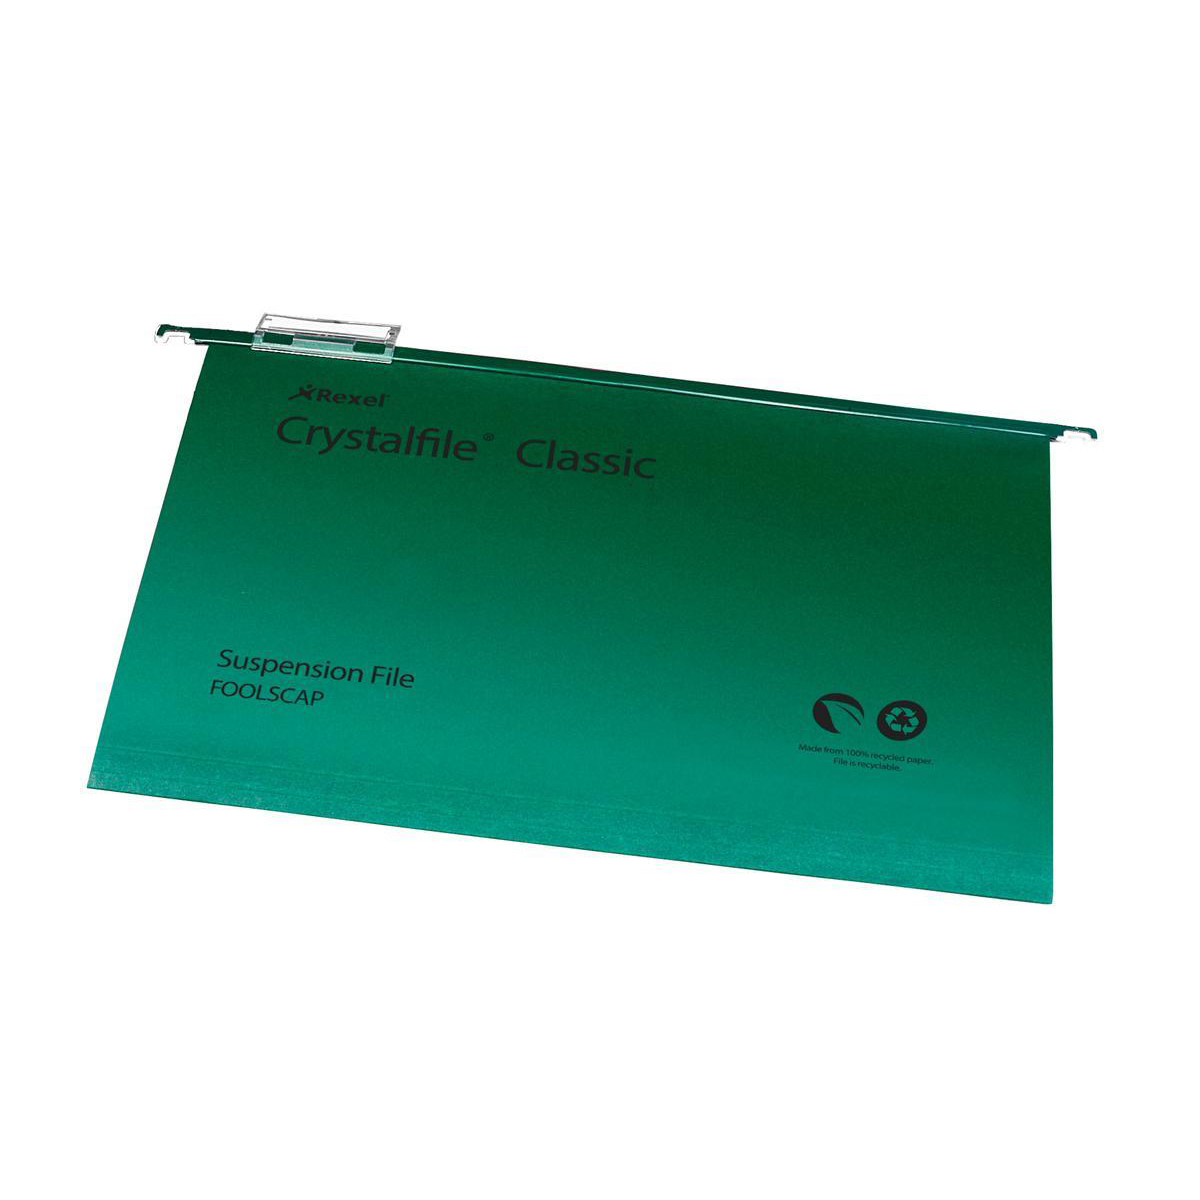 Rexel Crystalfile Classic Suspension File Manilla V-base Foolscap Green Ref 78046 [Pack 50] [COMPETITION]